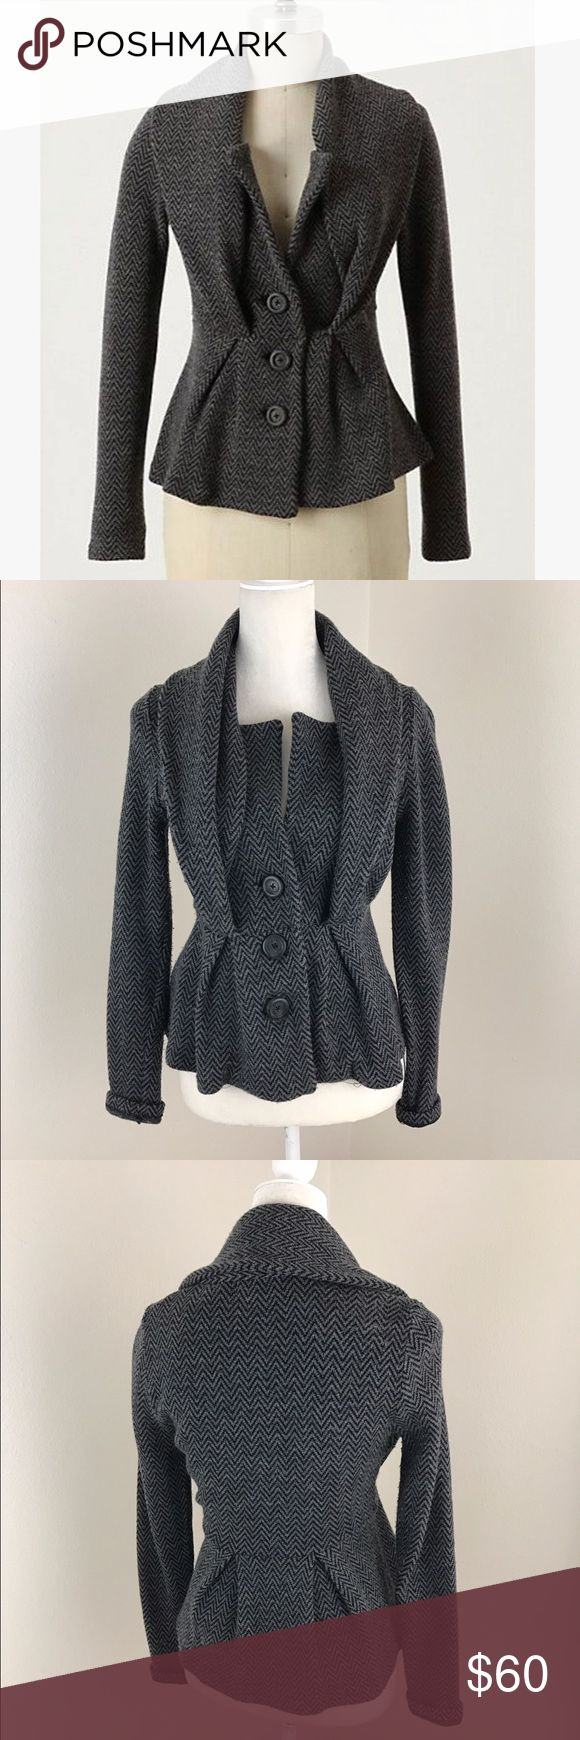 Sale! Anthro Sleeping on Snow Herringbone Jacket Anthropologie gray herring bone cowl neck sweater jacket with front button detail. Thicker knit between a sweater and a jacket. Long sleeve beautiful cape collar and cinched waist. Wool/cotton blend. Armpit to armpit, 19 inches. Used condition with minor pilling and there is a clasp shown in picture where the connector has pulled out (I don't even really see the need to use the clasp since the buttons serve that purpose but since it's a sign…